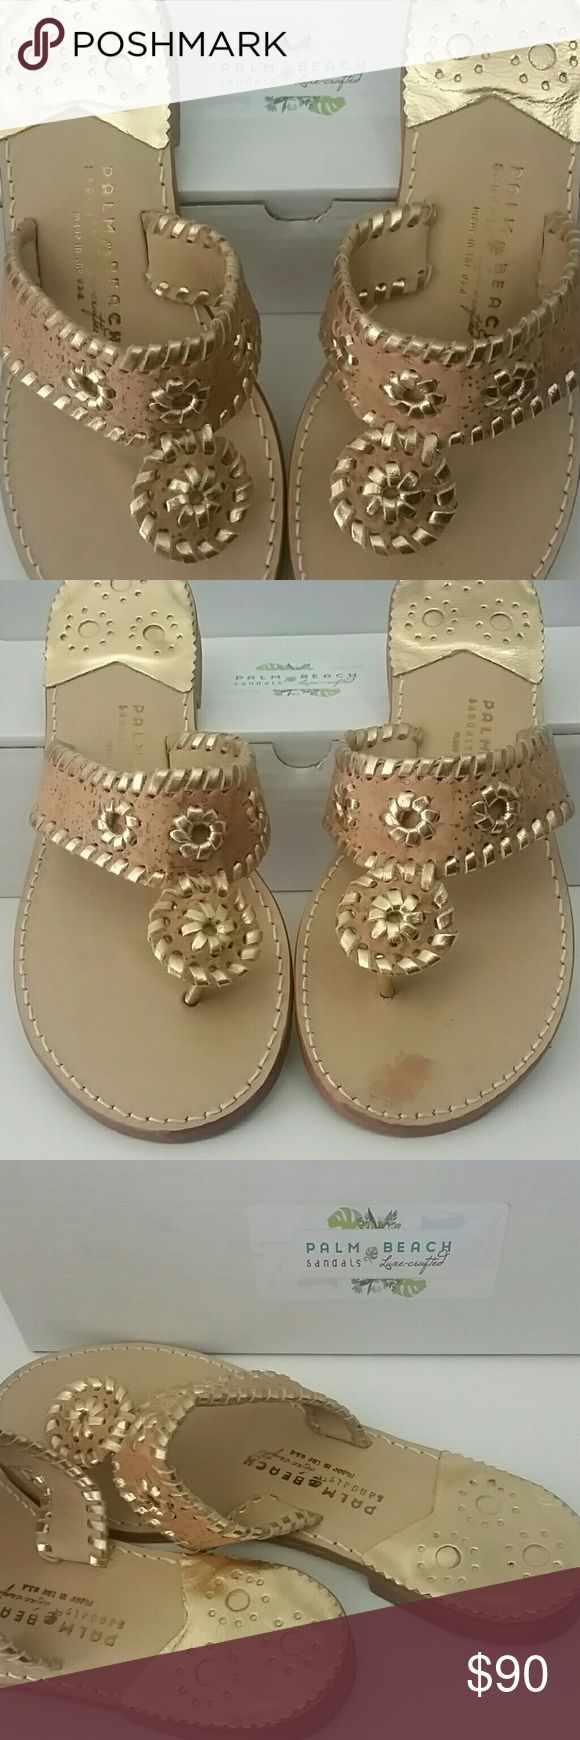 Palm Beach Sandals Size 8.5 EUC! Cork with gold trim. Minor discoloration on left shoe (footbed as shown), not noticeable when worn. These have been worn maybe 4 times, if that. Size 8.5  If you like JR, you will LOVE these! The original maker of the Navajo style sandal. Handmade, not mass produced. Superior quality...no comparison.   Smoke free, Pet free home. Bundle and Save! Palm Beach Shoes Sandals